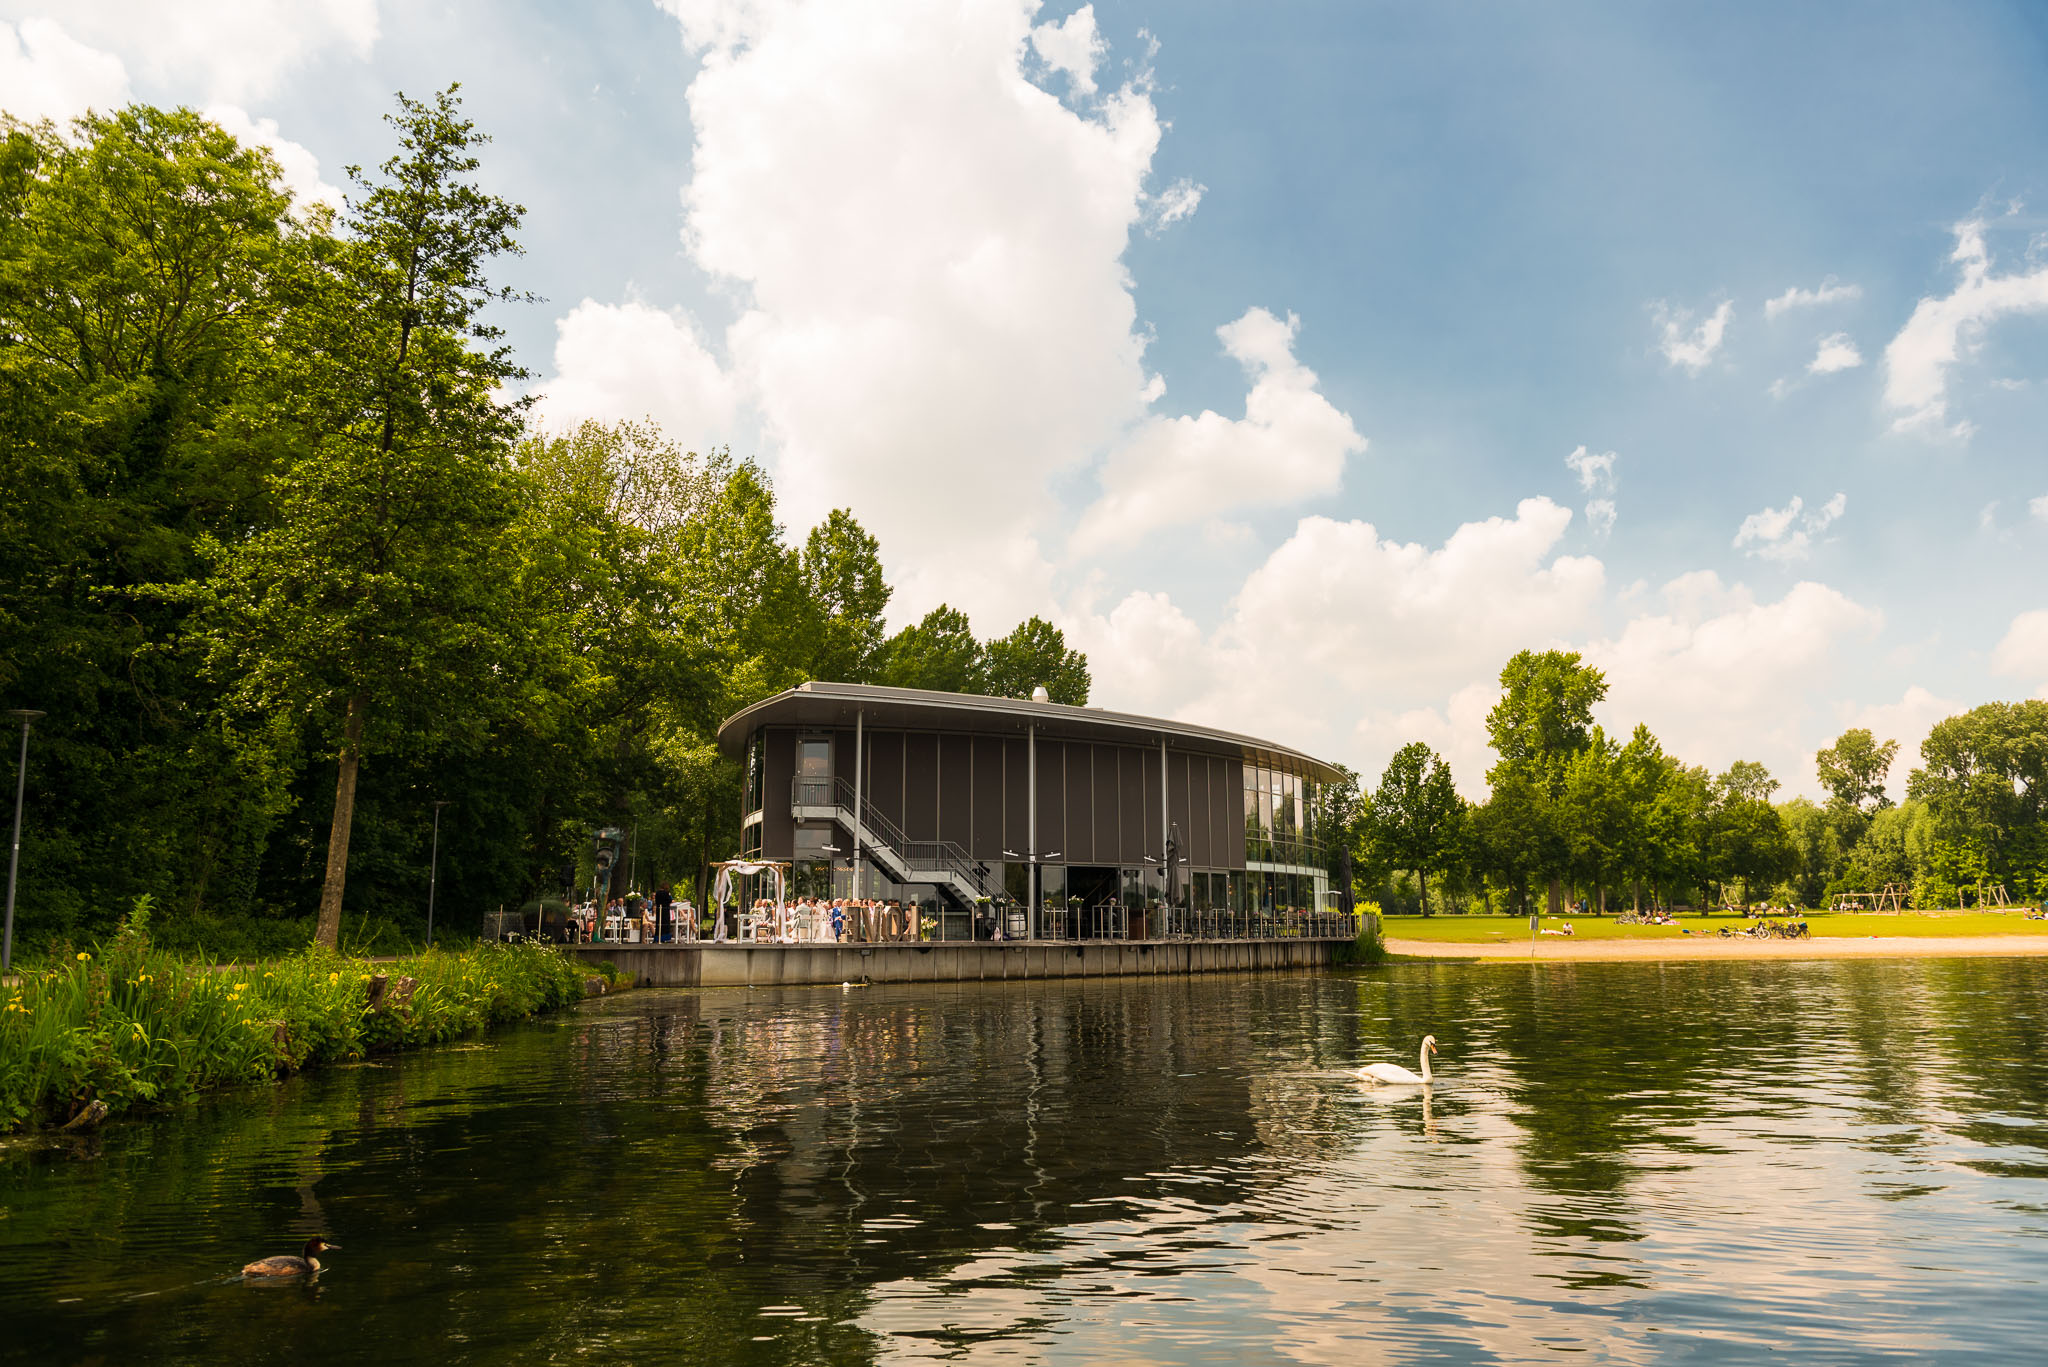 Boathouse Kralingen Trouwceremonie Bruiloft